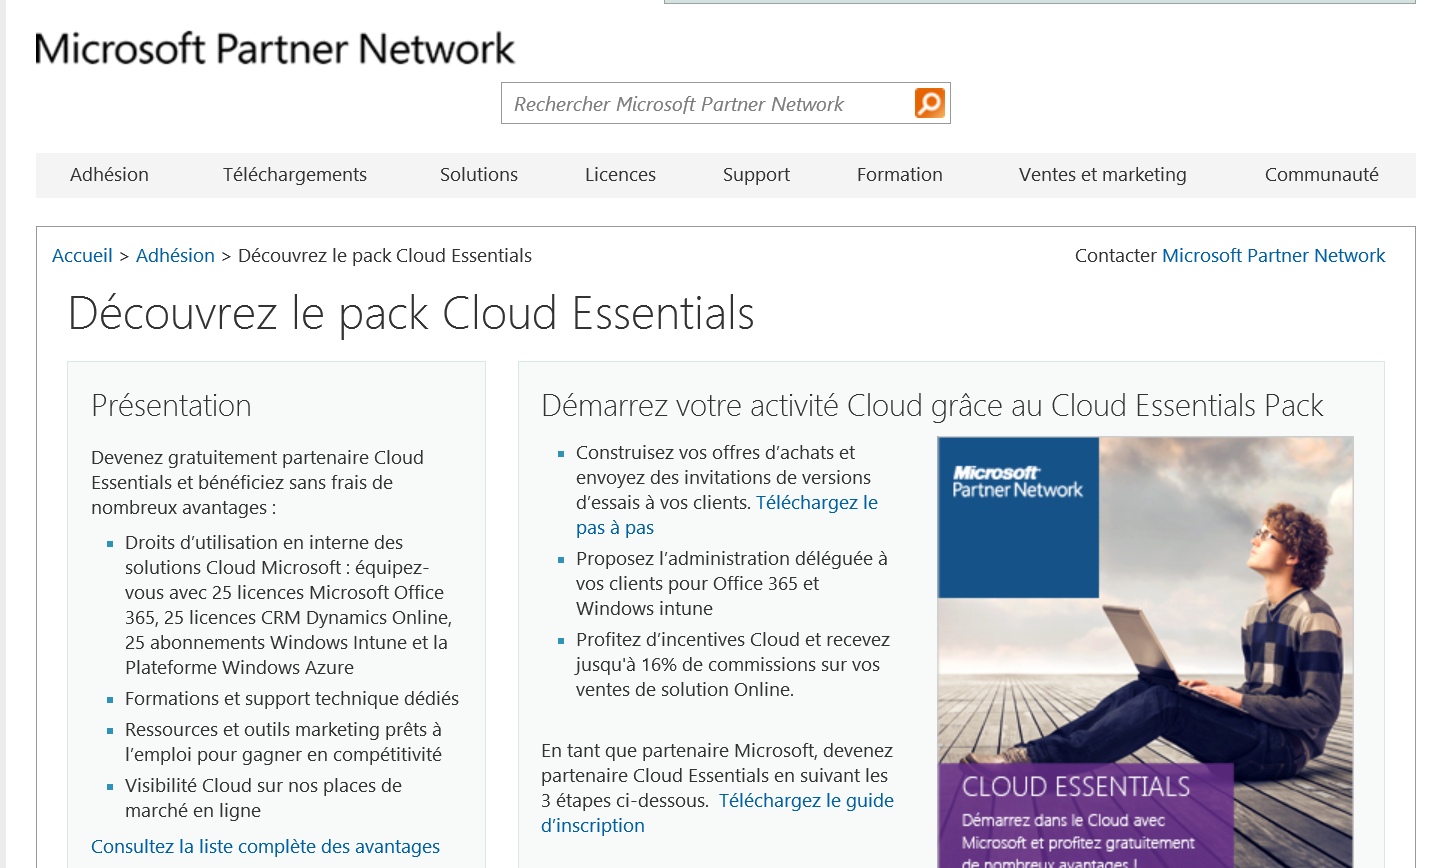 Pack Cloud Essentials https://mspartner.microsoft.